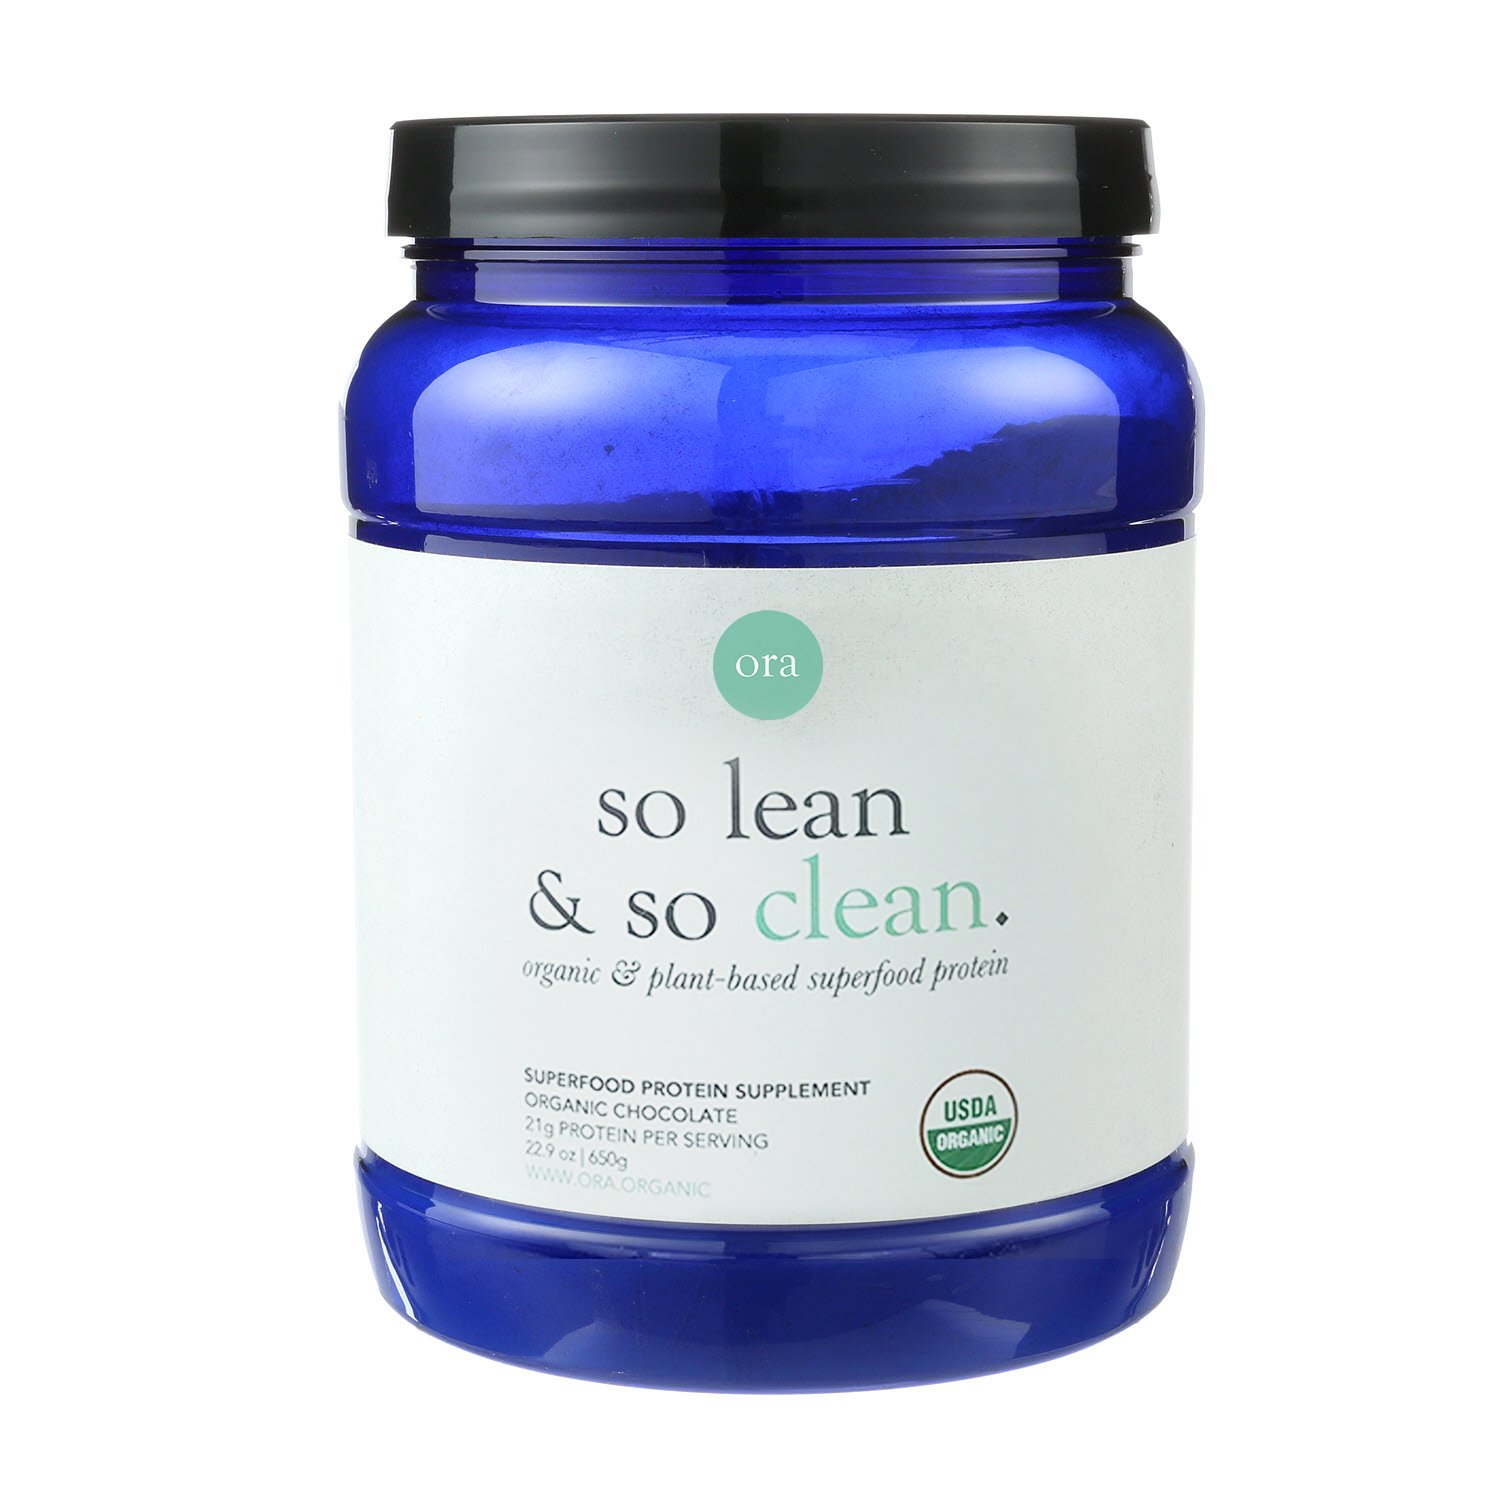 Ora Organic Vegan Protein Powder - Delicious Plant-Based Protein, 21g of Clean Lean Protein (20 Servings), Natural Chocolate Flavor & No Added Sugar, Gluten-Free, Dairy-Free, Soy-Free & Non-GMO